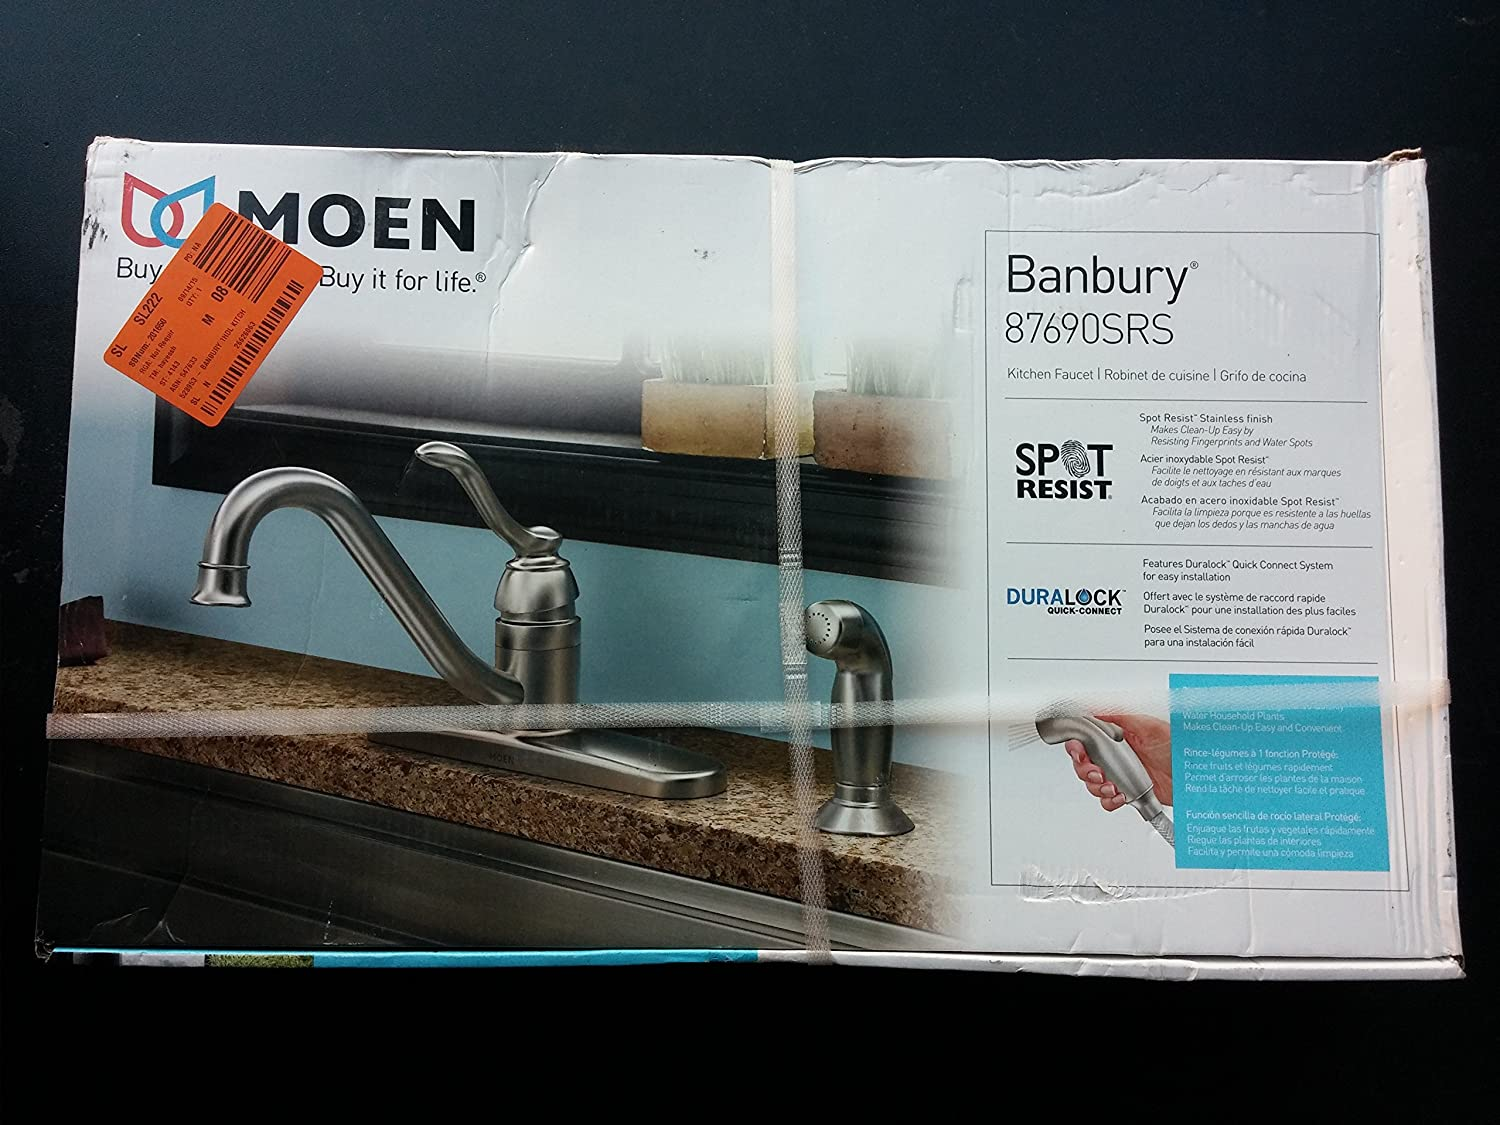 moen 87690srs kitchen faucet with side spray from the banbury